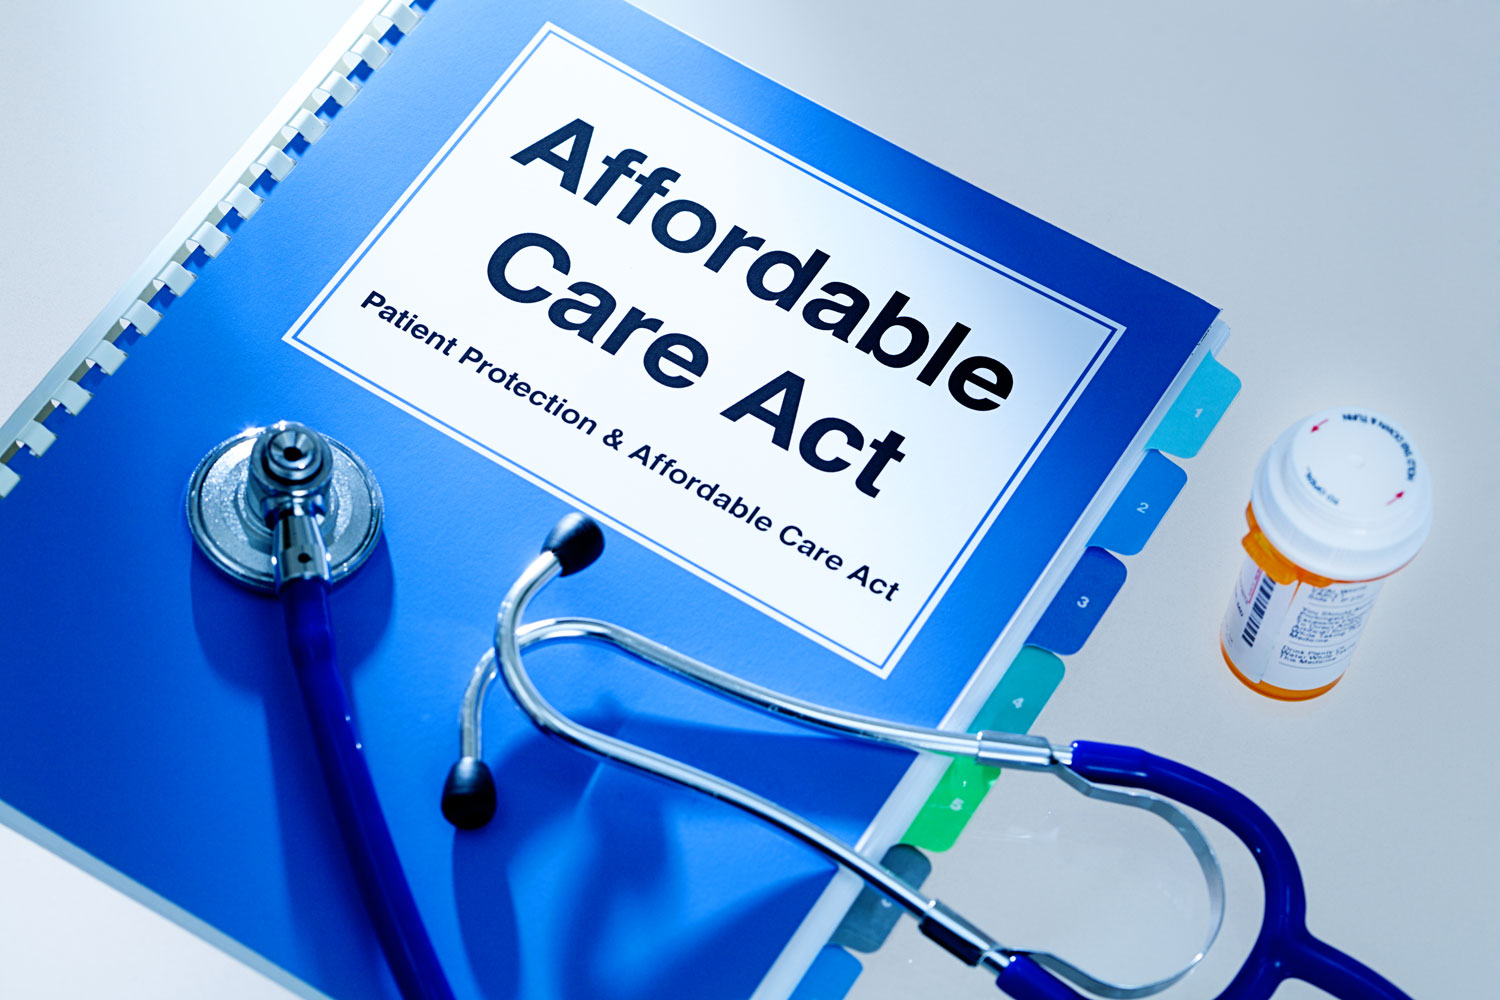 """Blue book that says """"Affordable Care Act"""" with a stethoscope and pill bottle"""